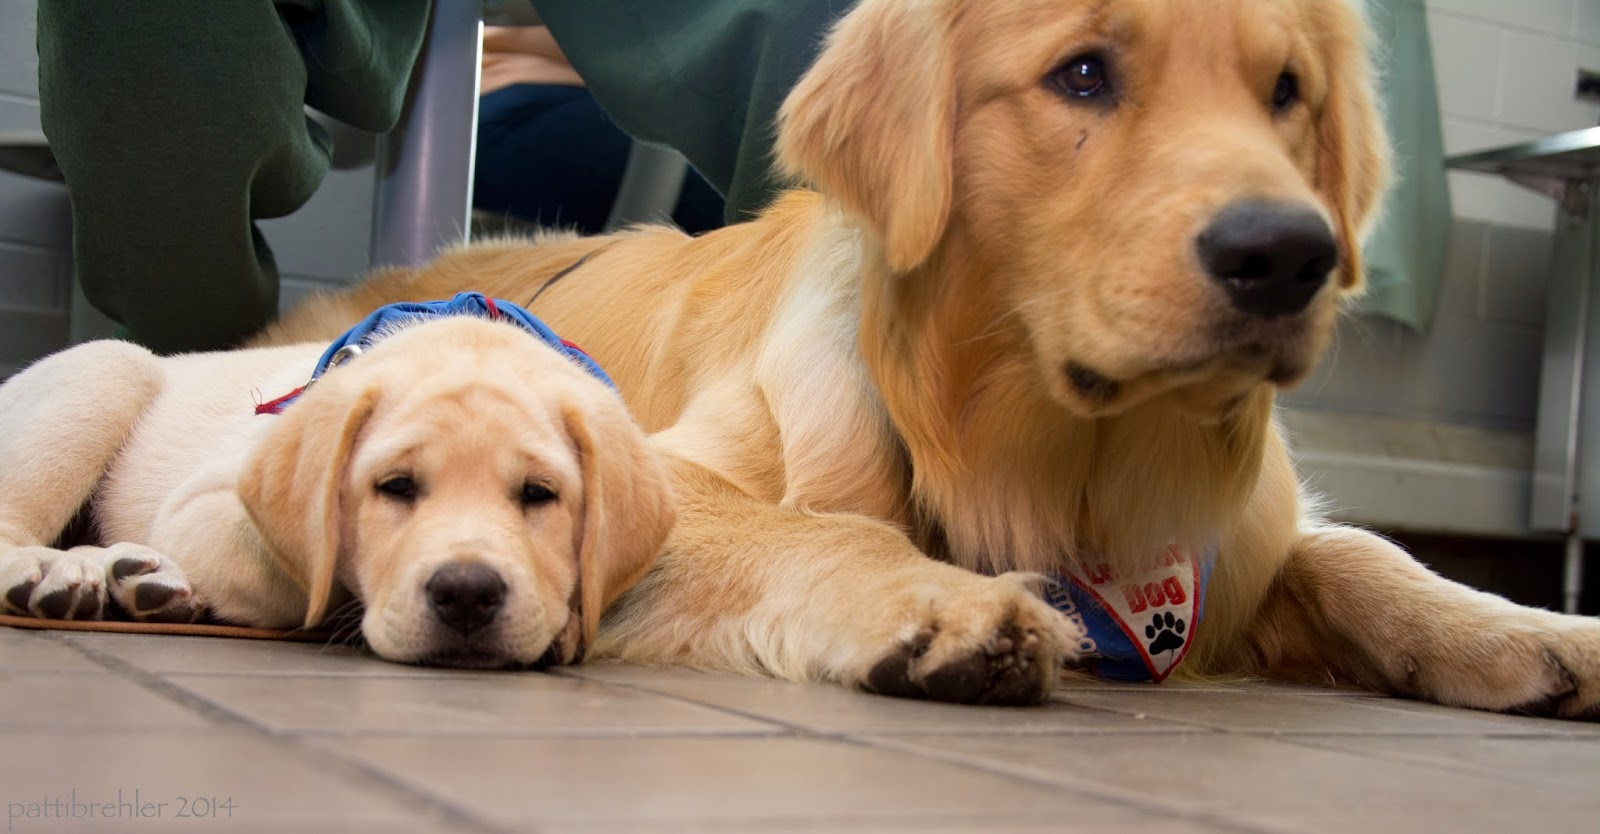 A floor level shot of a small yellow lab (left) lying next to a large golden retriever, who is also lying on the tile floor. The little puppy has her chin on the floor, looking at the camera. The golden's head is up and he is looking off to the right.